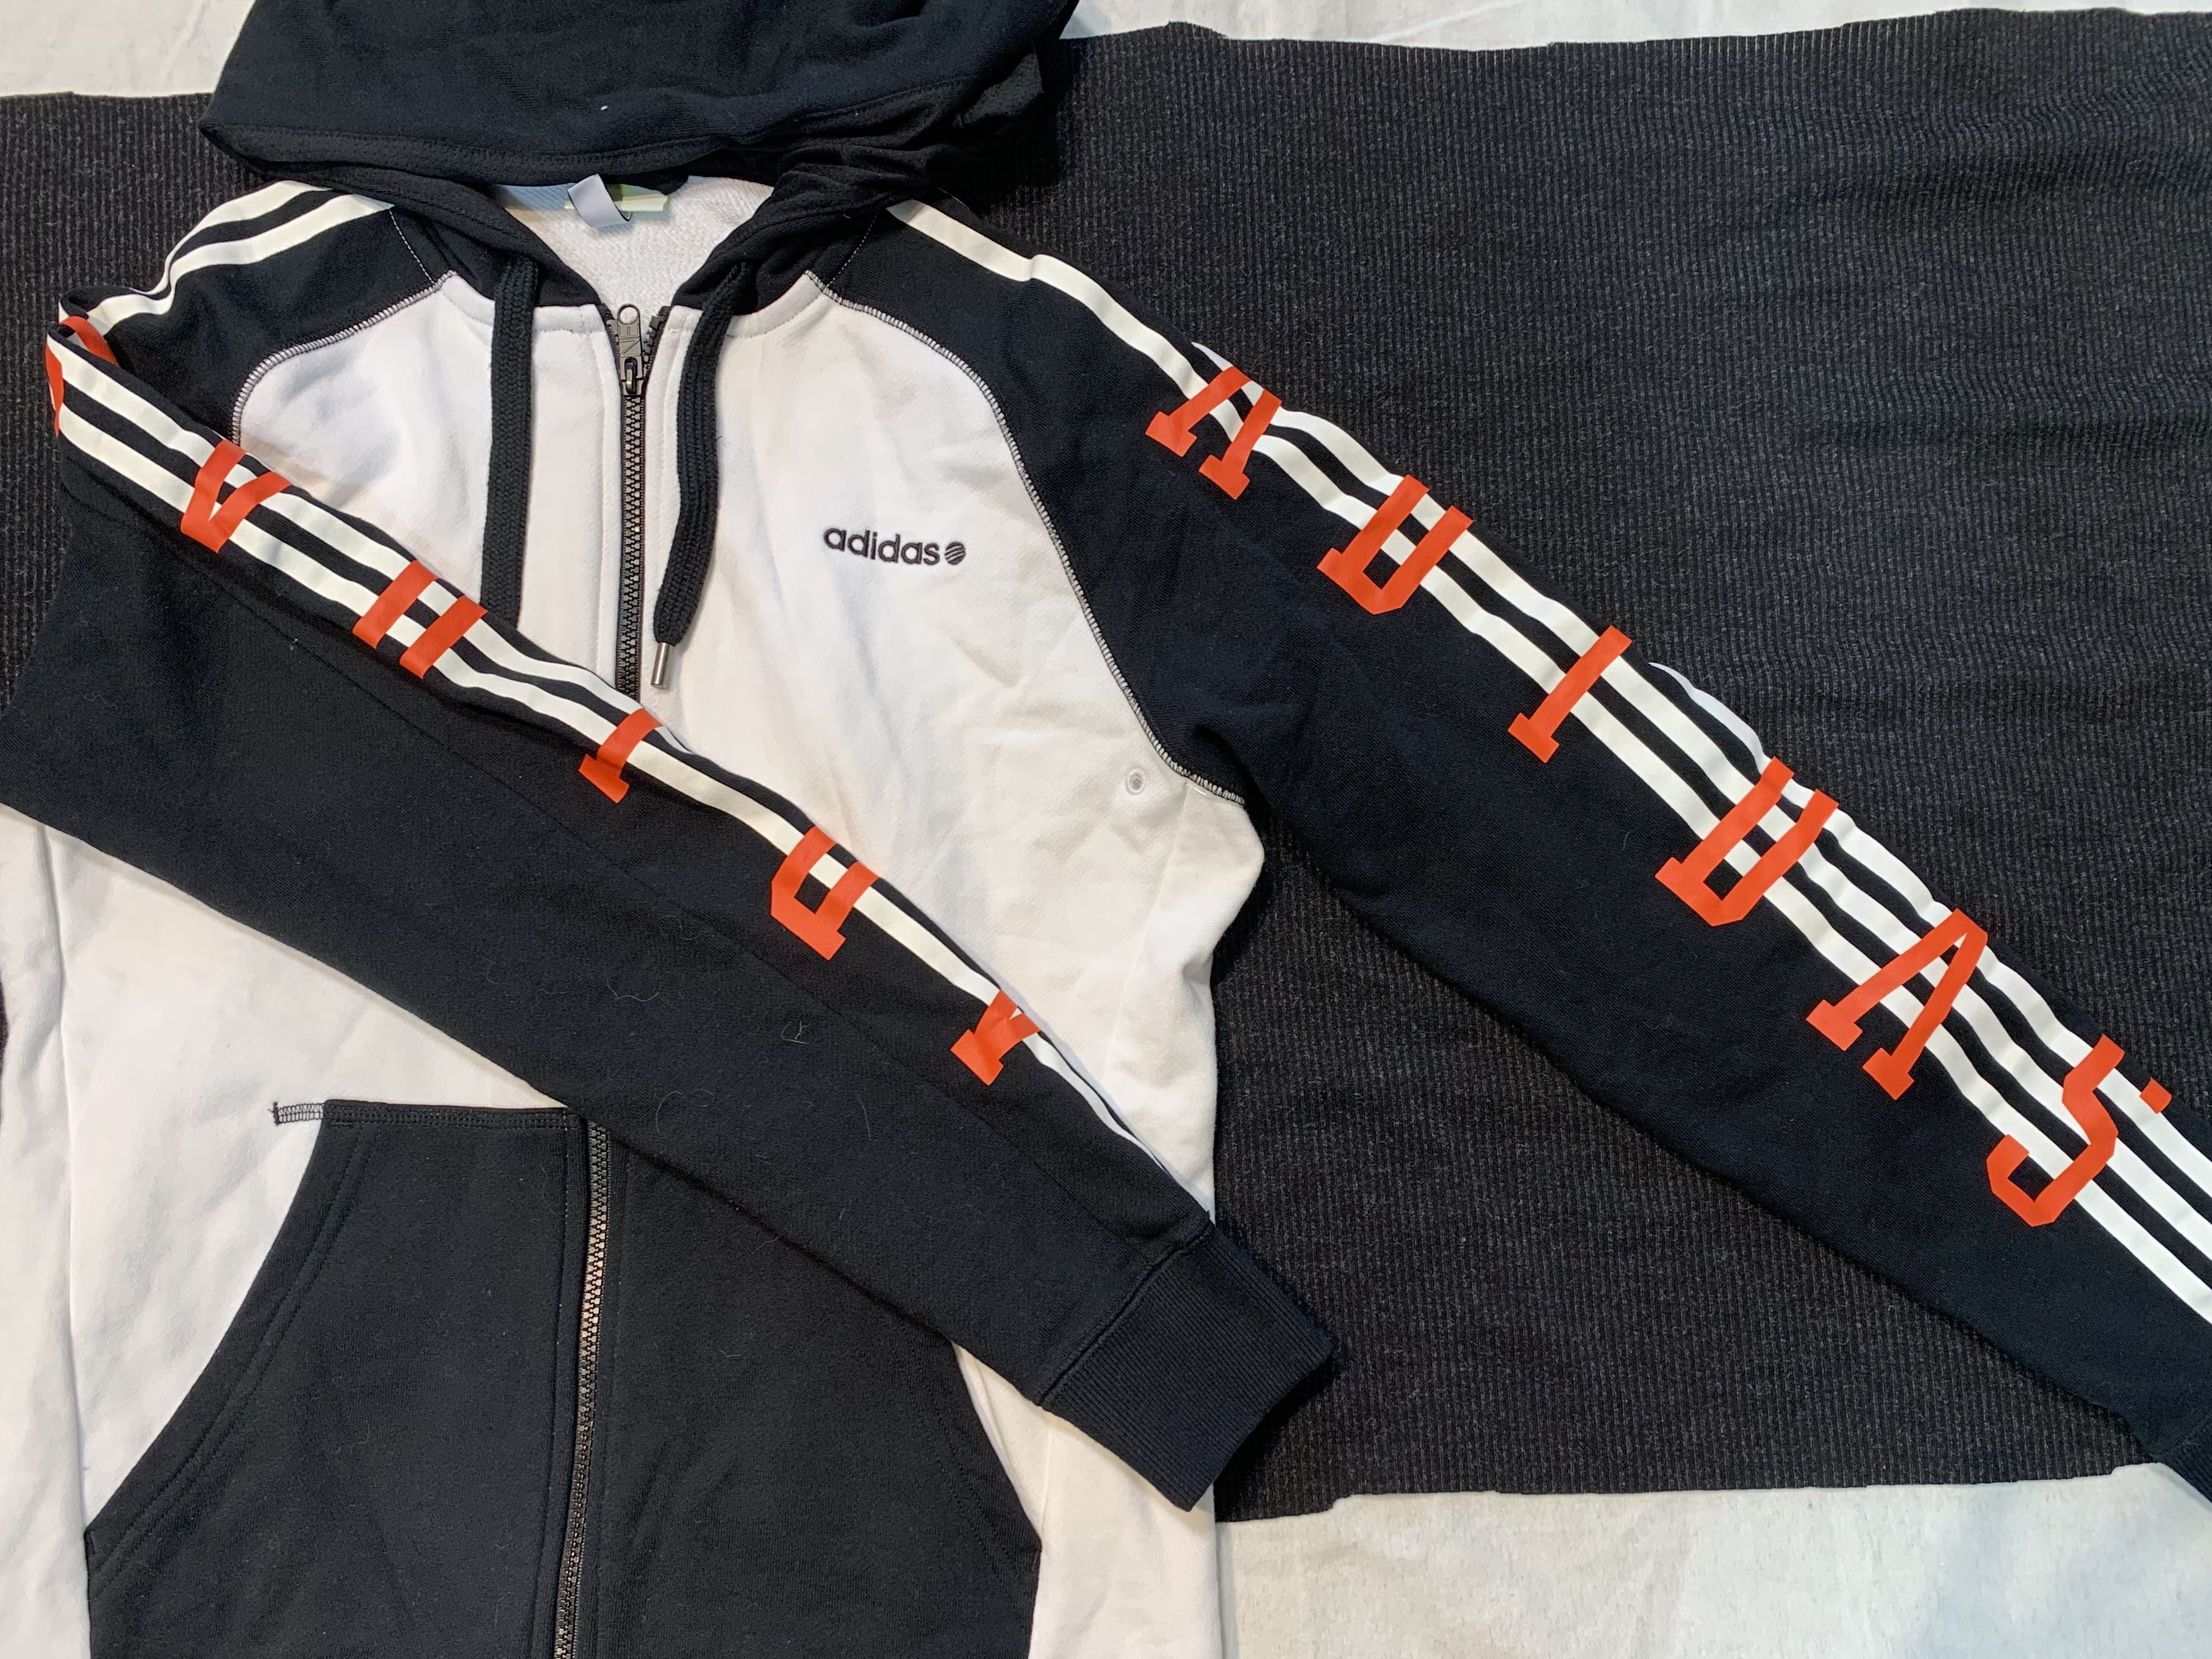 Whatcha doin' this weekend? We bet this hoodie fits into